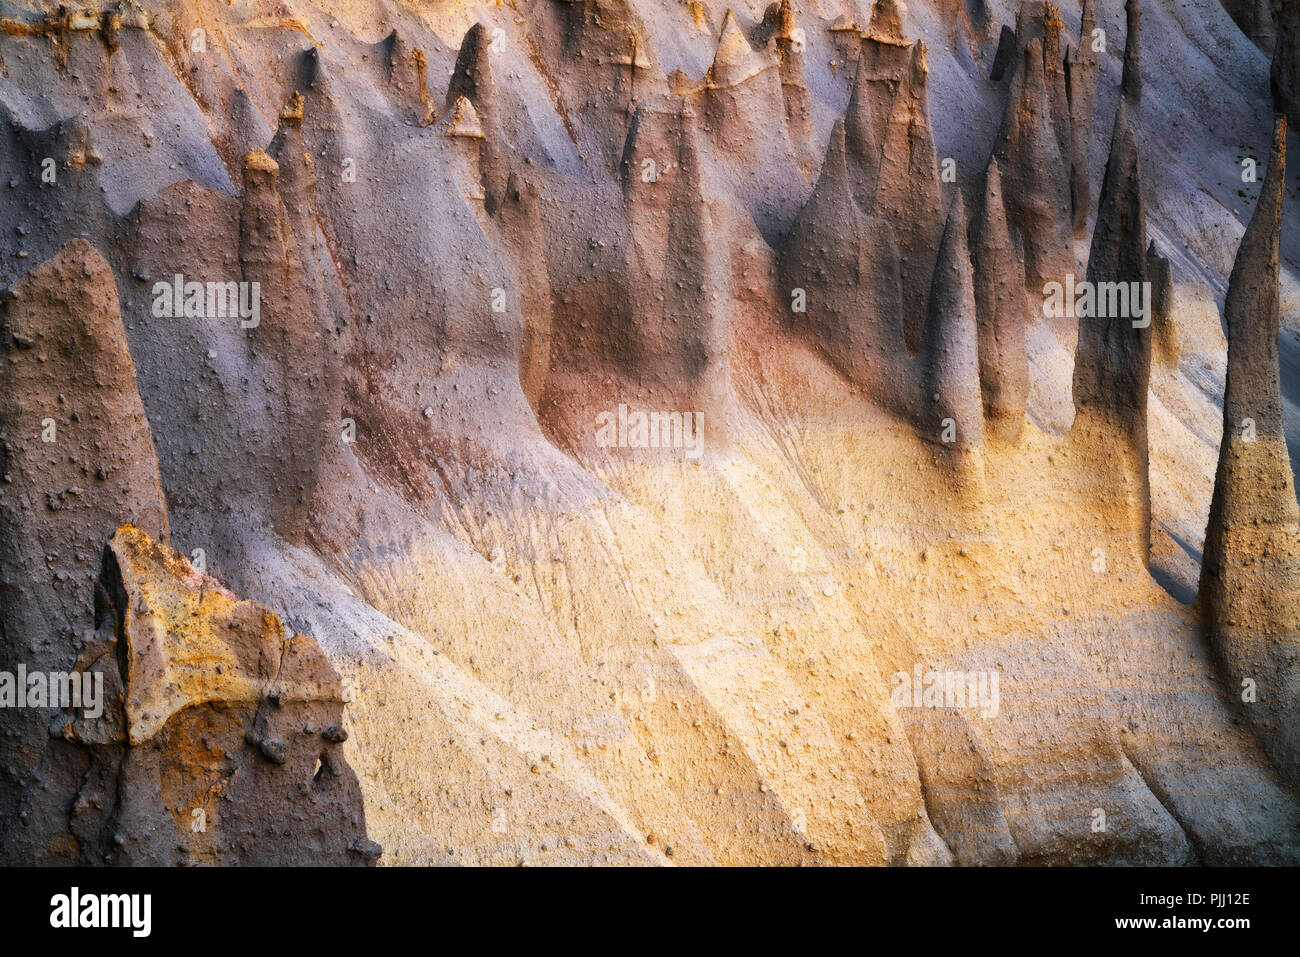 Pre dawn glow on the towering volcanic pumice spires know as The Pinnacles along Wheeler Creek in Oregon's Crater Lake National Park. - Stock Image